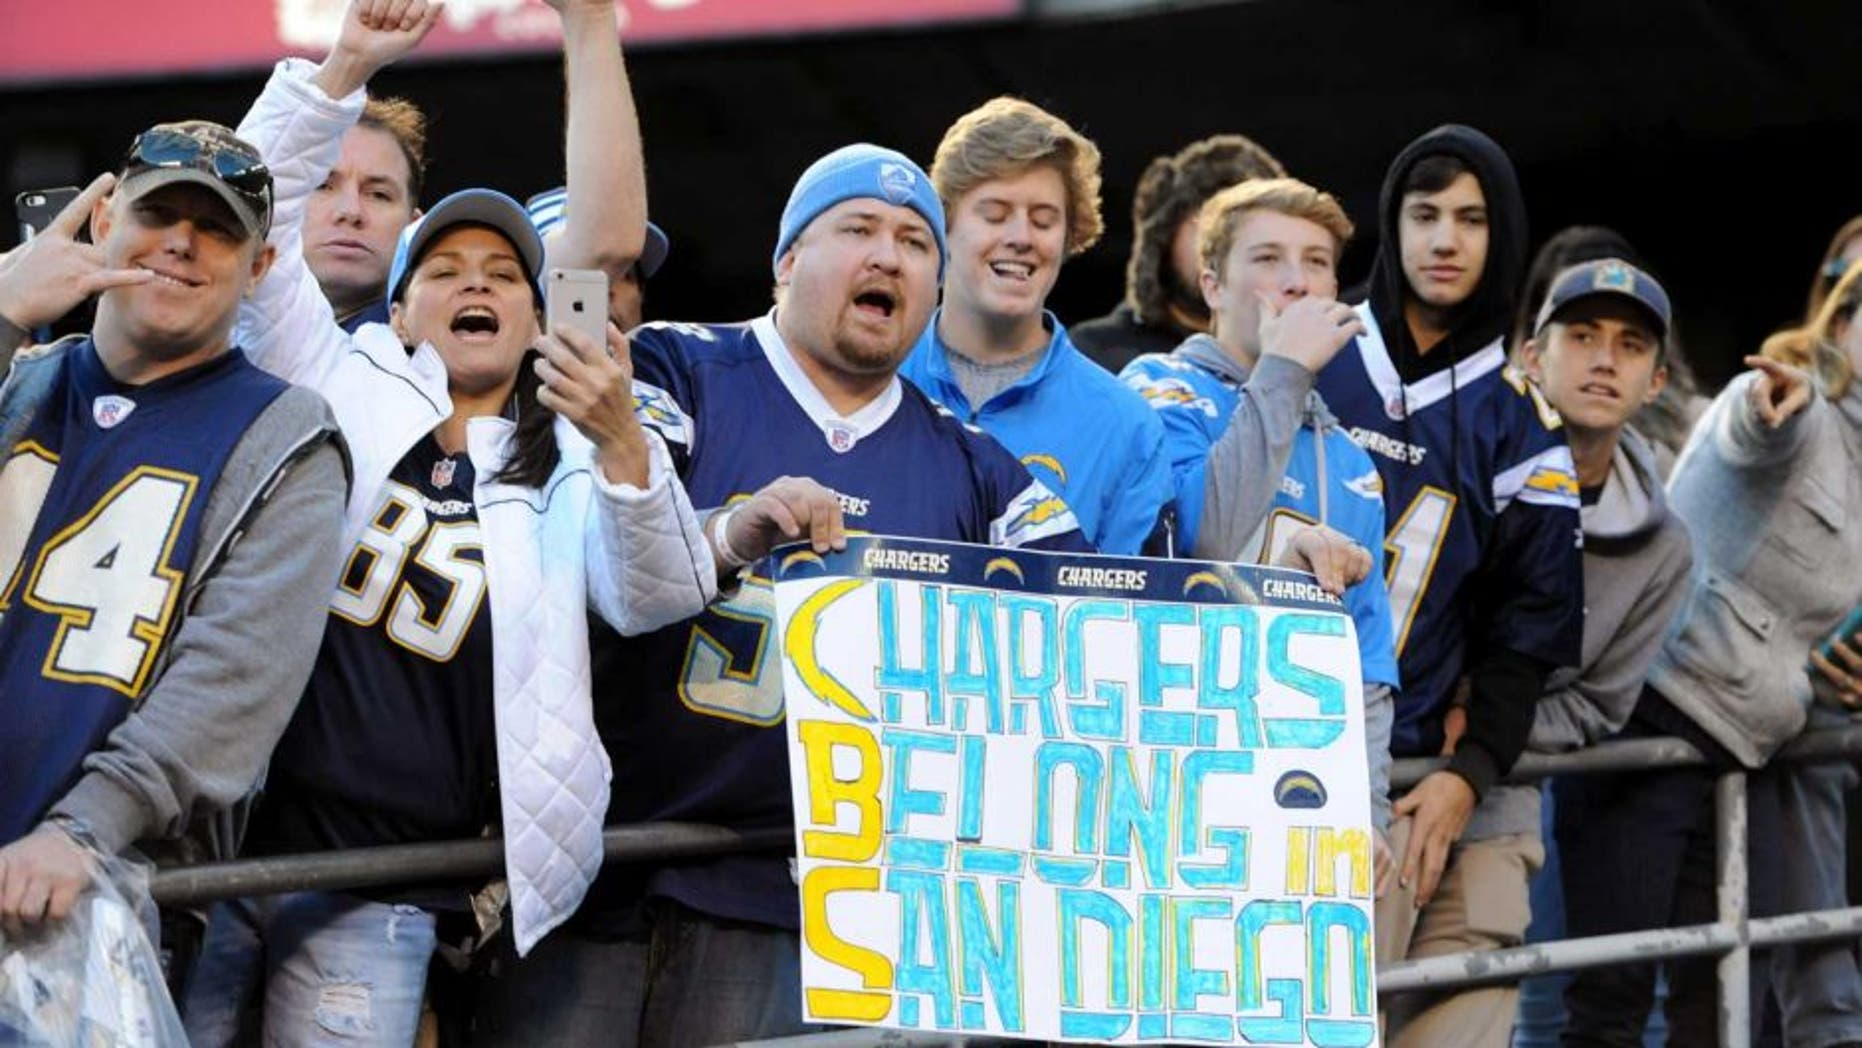 Jan 1, 2017; San Diego, CA, USA; A San Diego Chargers fan holds up a sign referencing the possible move to Los Angeles by the team during the second half of the game against the Kansas City Chiefs at Qualcomm Stadium. The Chiefs won 37-27. Mandatory Credit: Orlando Ramirez-USA TODAY Sports